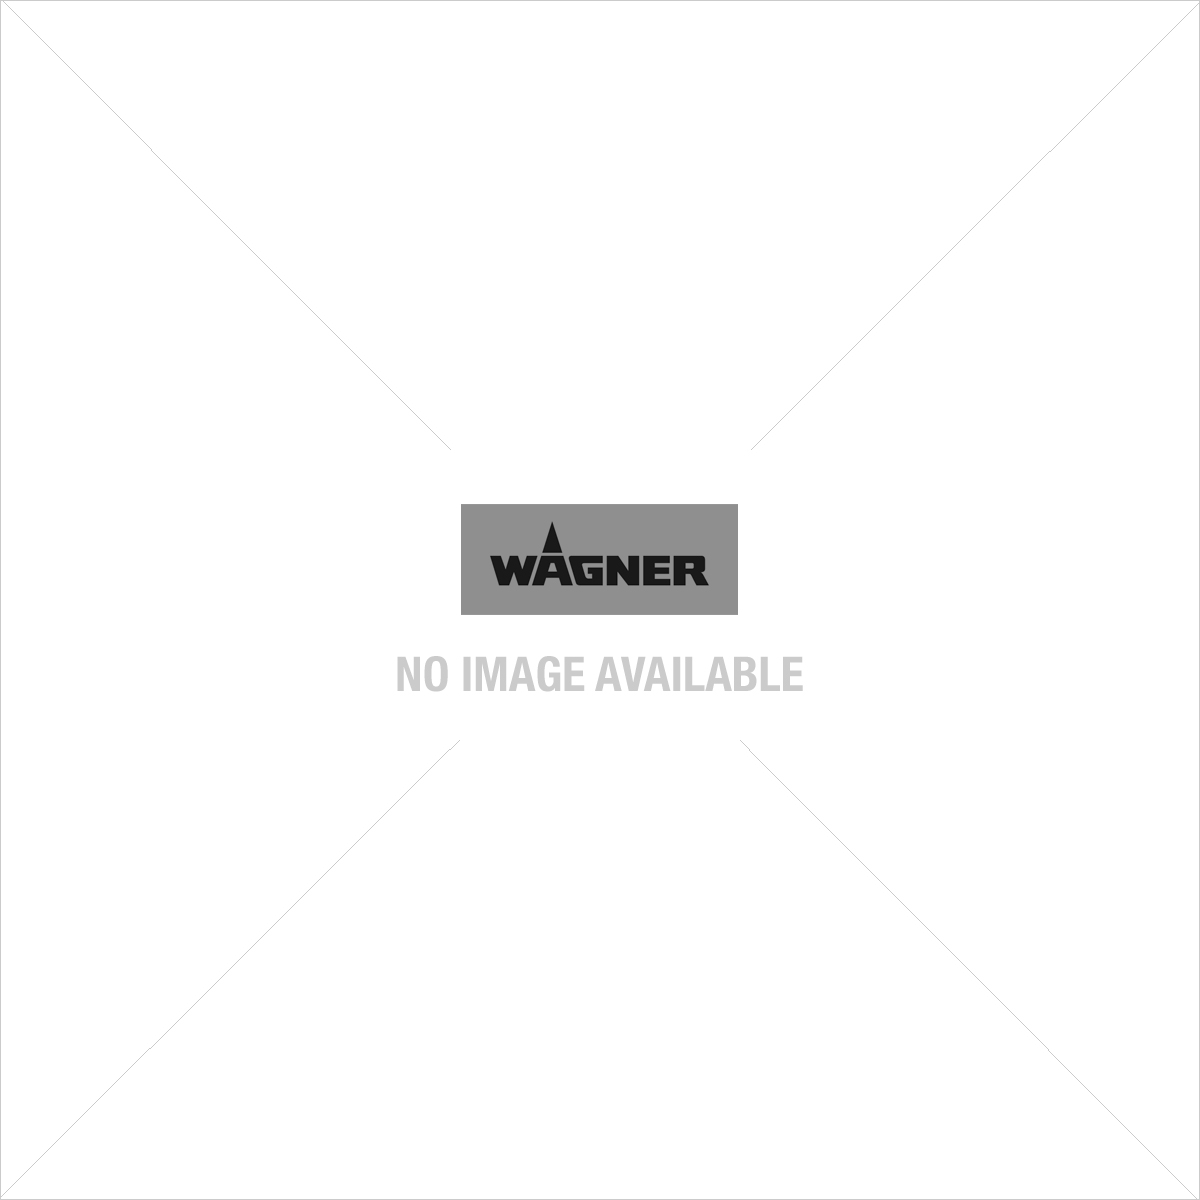 Wagner Wallperfect 1800 ml